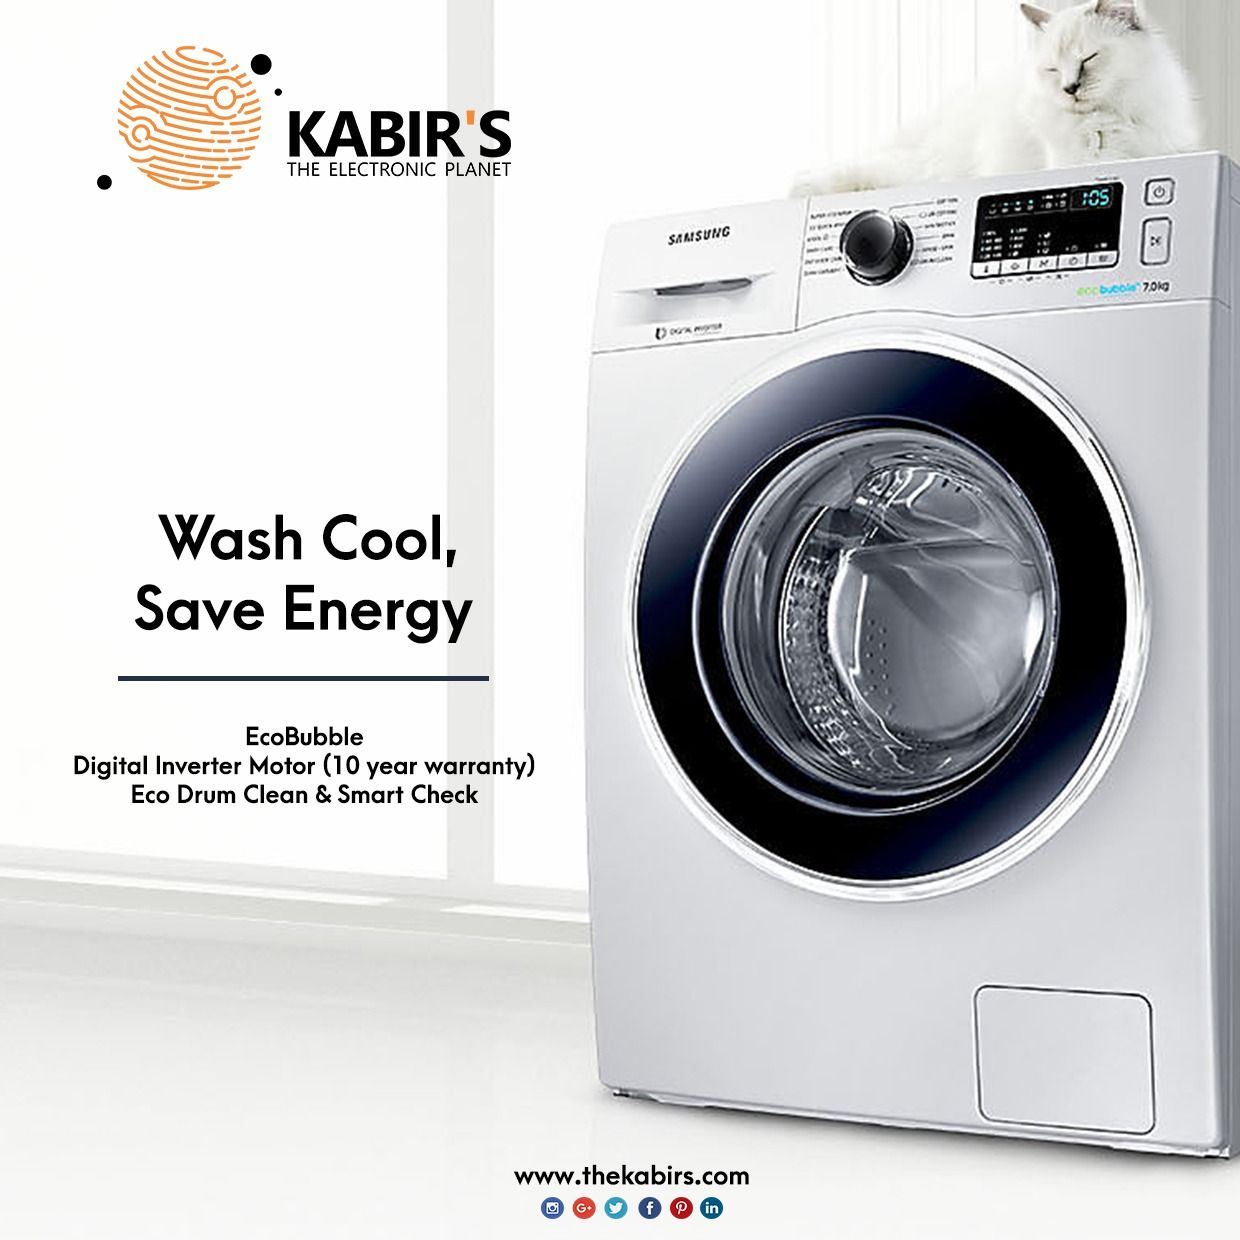 Wash Cool And Save Energy With Samsung Washing Machine Let S Make Your Washing Easy With Exciting Of Samsung Washing Machine Home Appliances Appliances Online